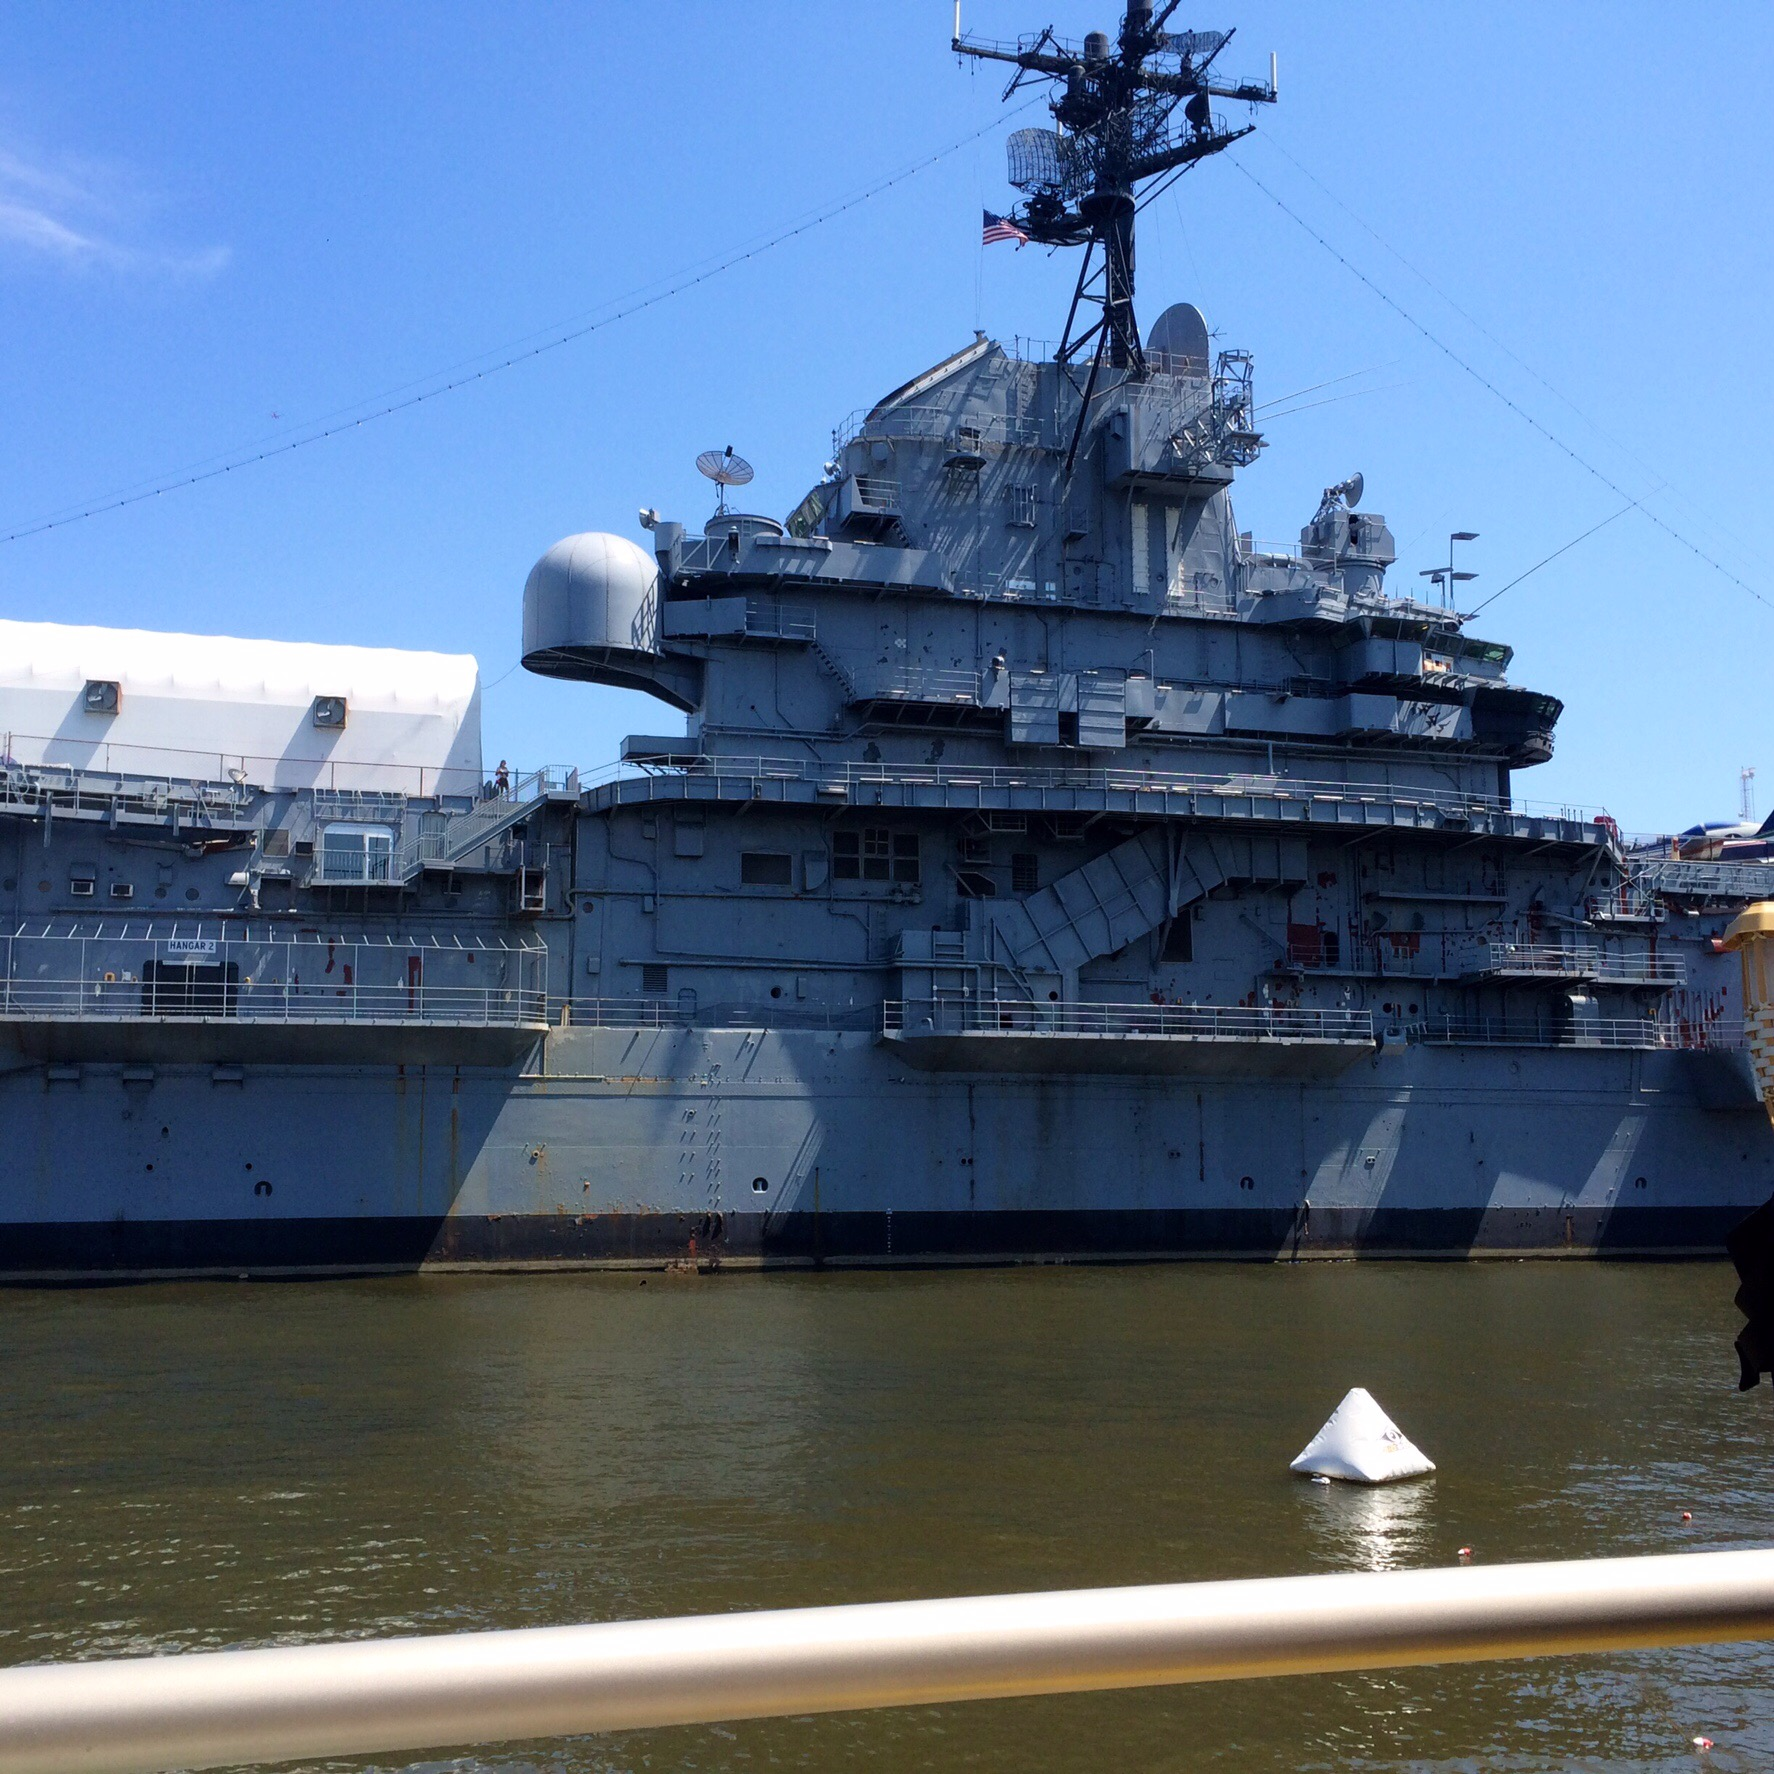 The Intrepid. We got to paddle right up to this beast!